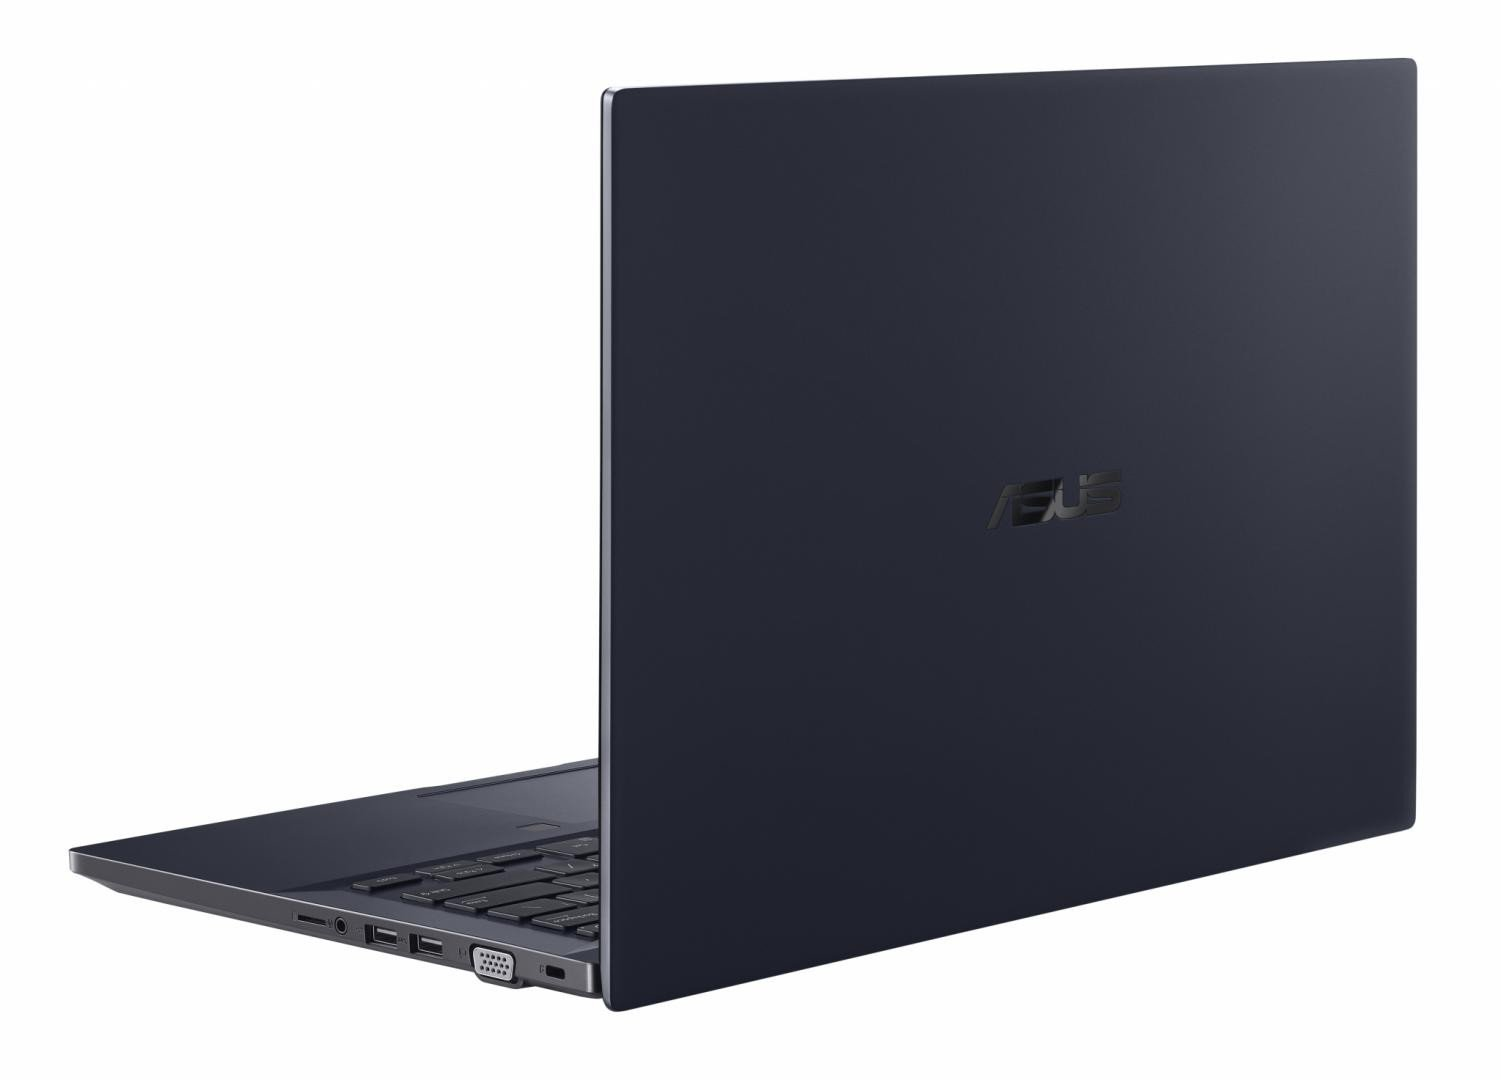 Laptop Business ASUS ExpertBook P2451FA-EK2146, 14.0-inch, FHD (1920 x 1080) 16:9, LCD, Anti-glare display, Intel® Core™ i5-10210U Processor 1.6 GHz (6M Cache, up to 4.2 GHz, 4 cores), Intel® UHD Graphics, 16GB DDR4 SO-DIMM, 512GB M.2 NVMe™ PCIe® 3.0 SSD, Wi-Fi 5(802.11ac)+Bluetooth 4.2 (Dual band) - imaginea 2